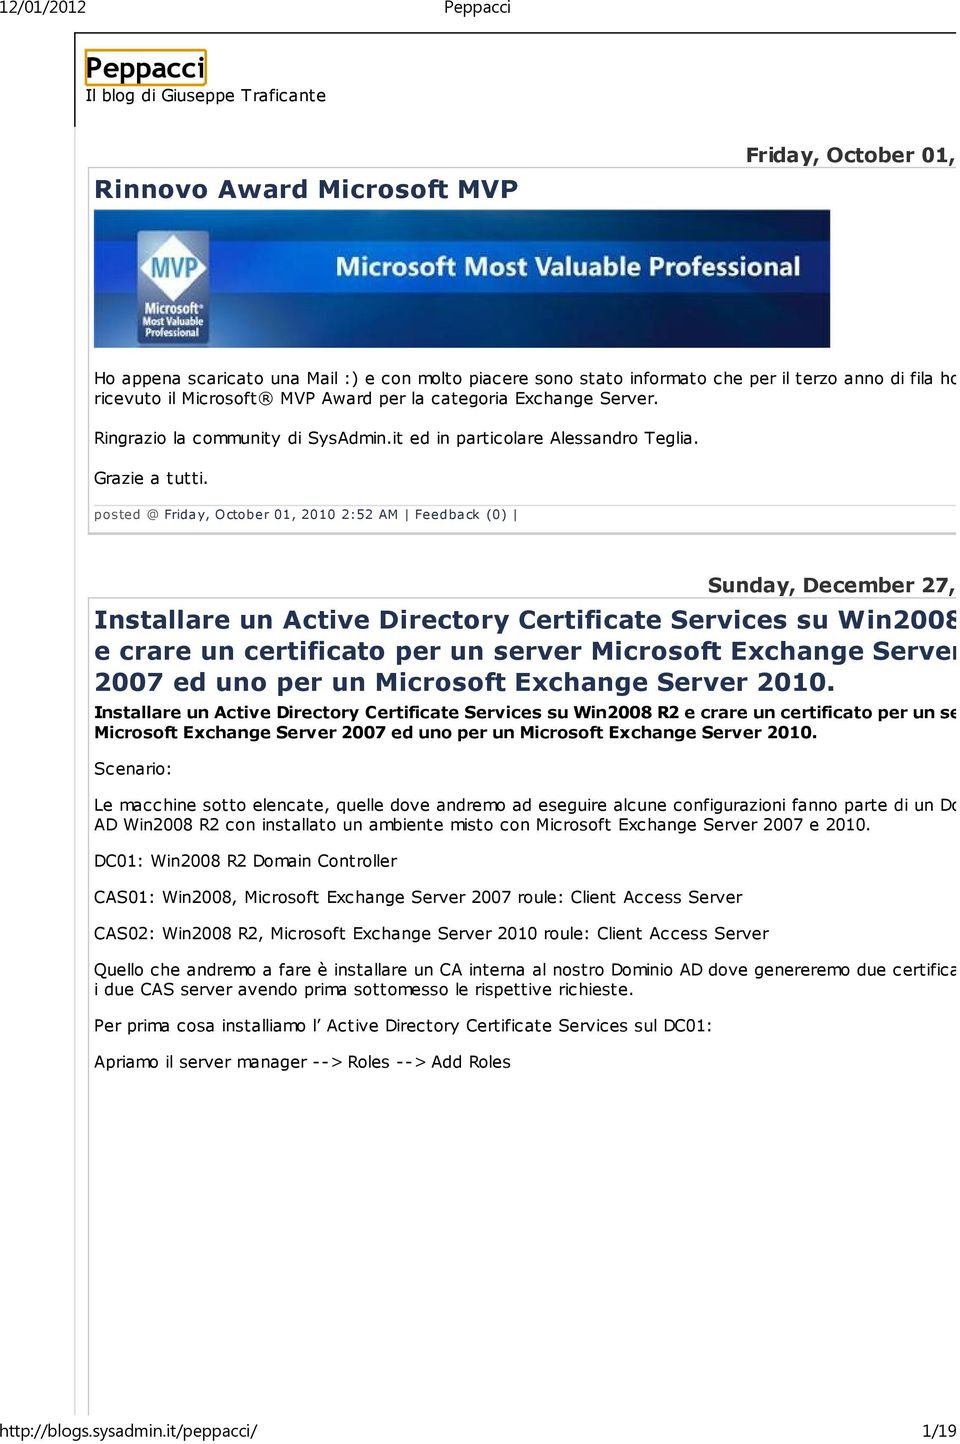 posted @ Friday, October 01, 2010 2:52 AM Feedback (0) Sunday, December 27, 2009 Installare un Active Directory Certificate Services su Win2008 R2 e crare un certificato per un server Microsoft